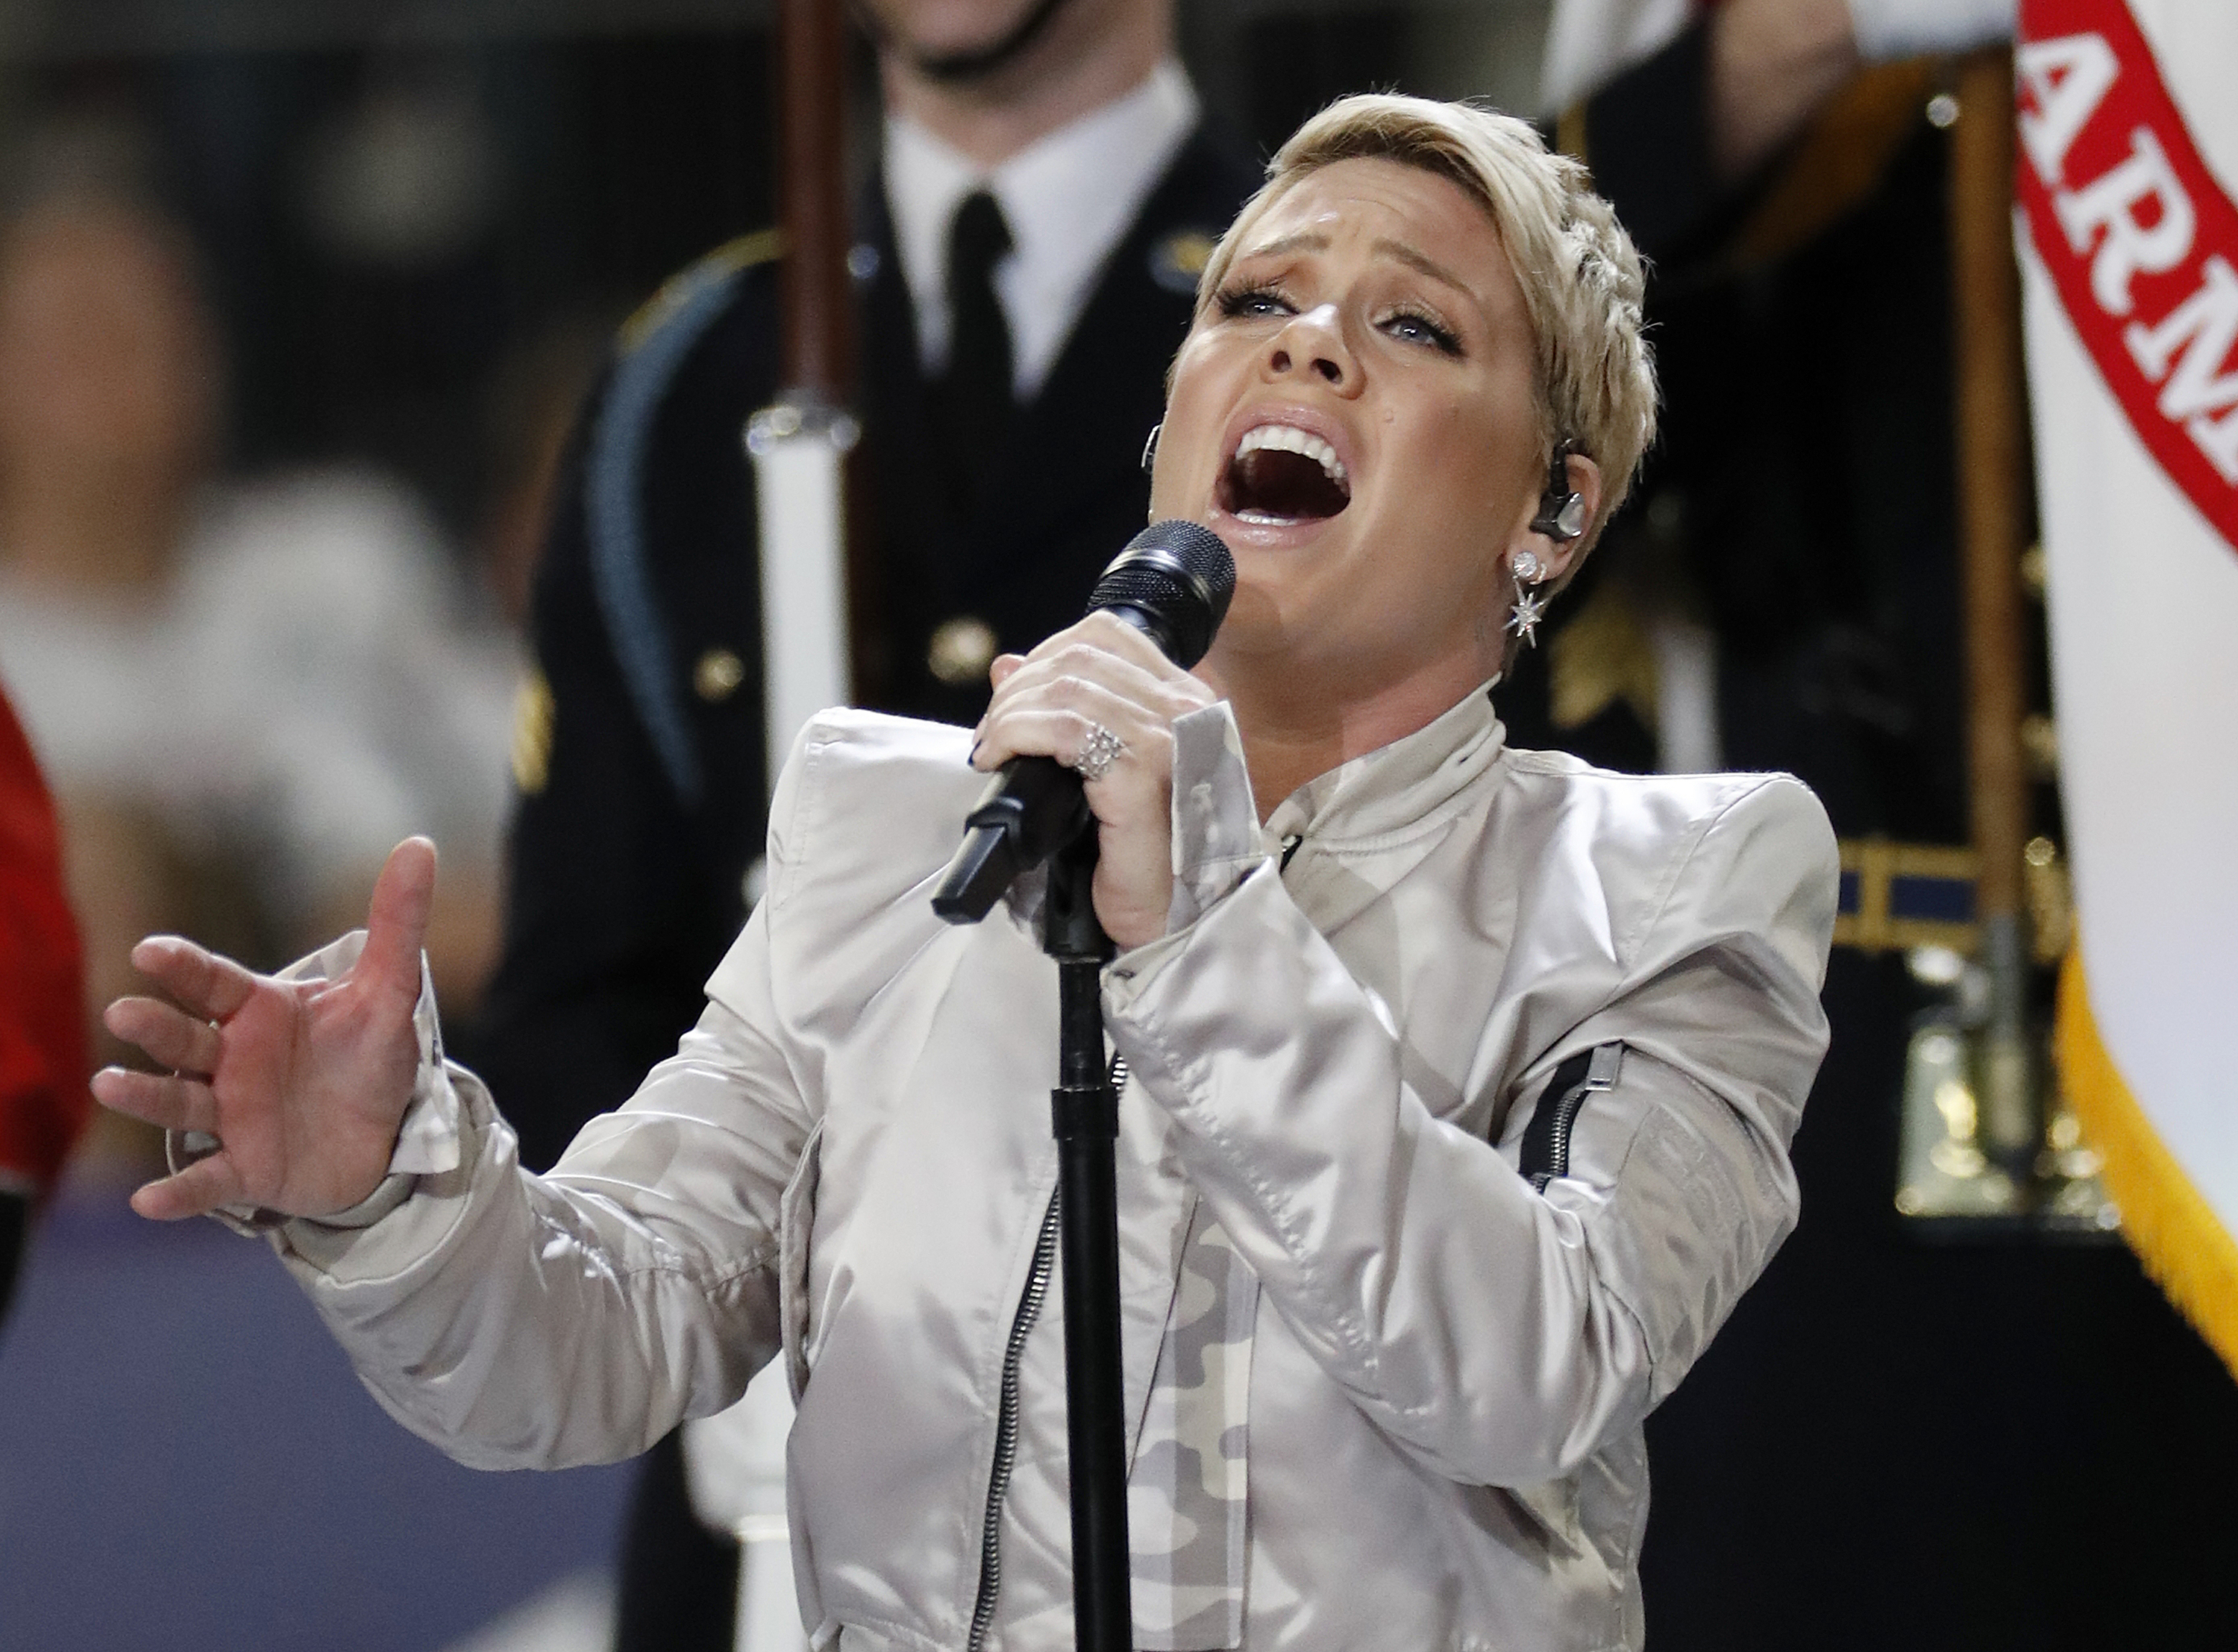 <div class='meta'><div class='origin-logo' data-origin='AP'></div><span class='caption-text' data-credit='AP Photo/Matt York'>Pink performs the national anthem before the NFL Super Bowl 52 football game between the Philadelphia Eagles and the New England Patriots Sunday, Feb. 4, 2018, in Minneapolis.</span></div>